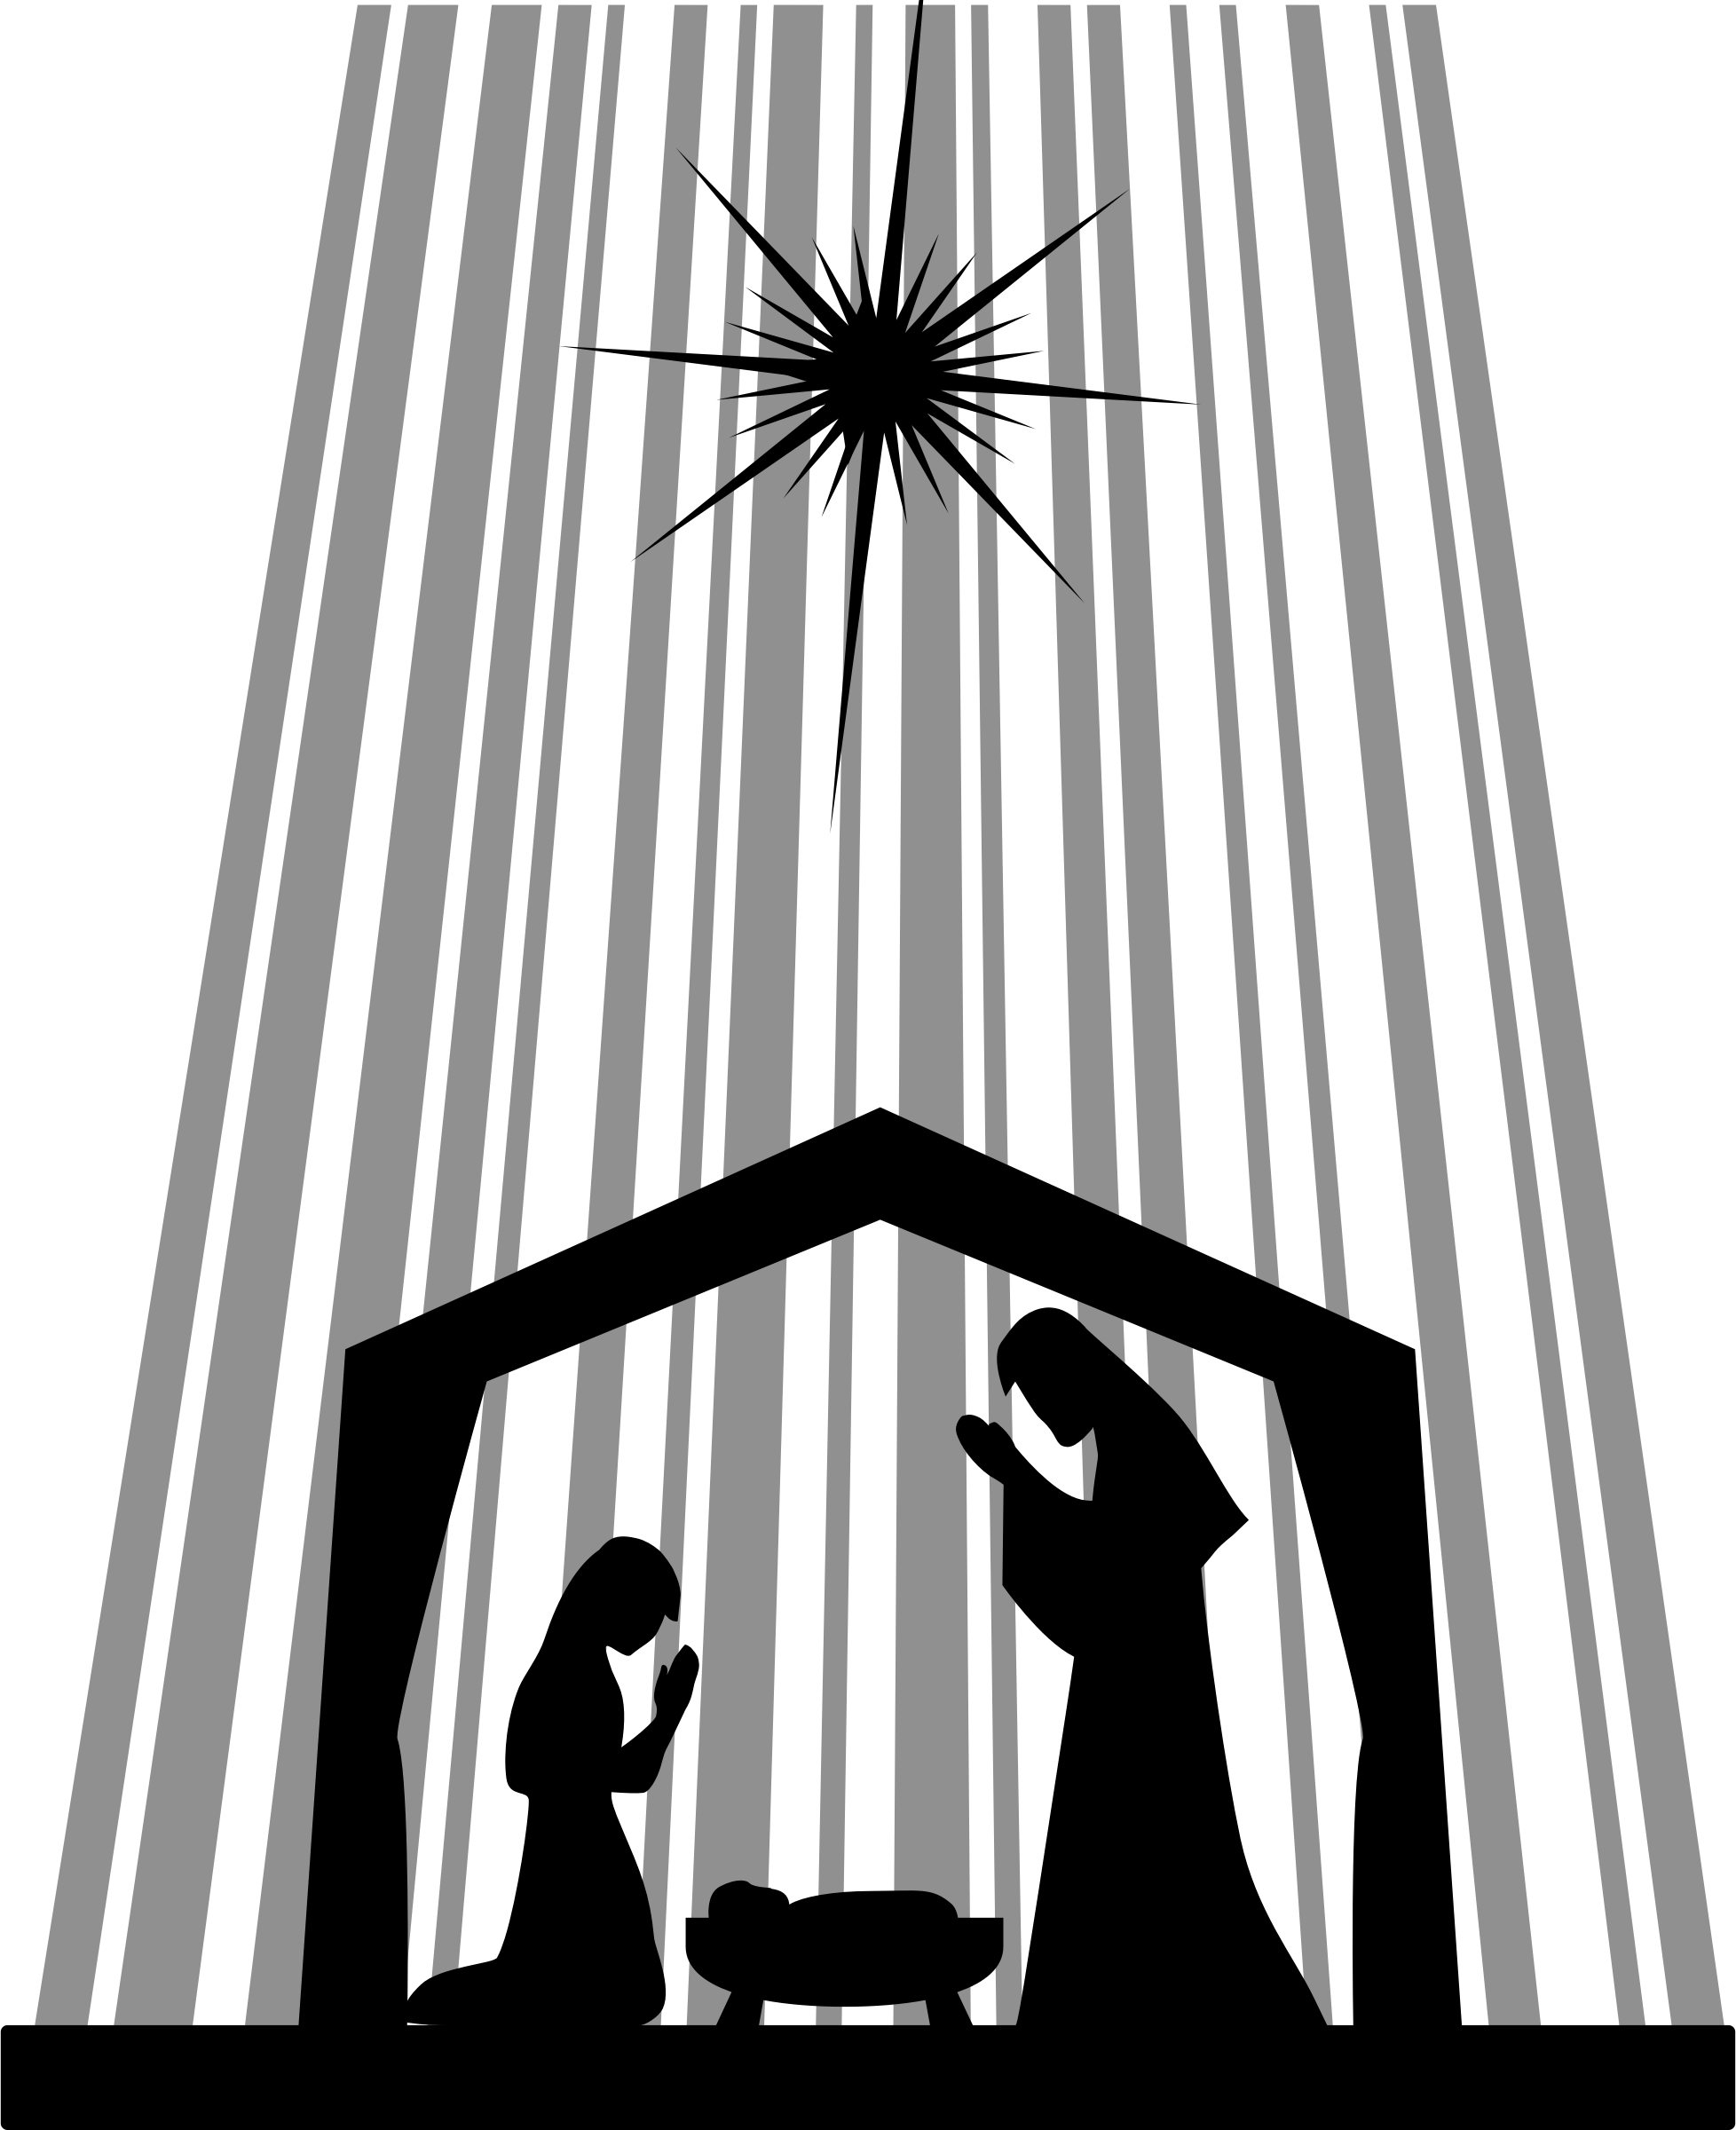 image black and white stock Baby in a manger clipart. Nativity silhouette big image.